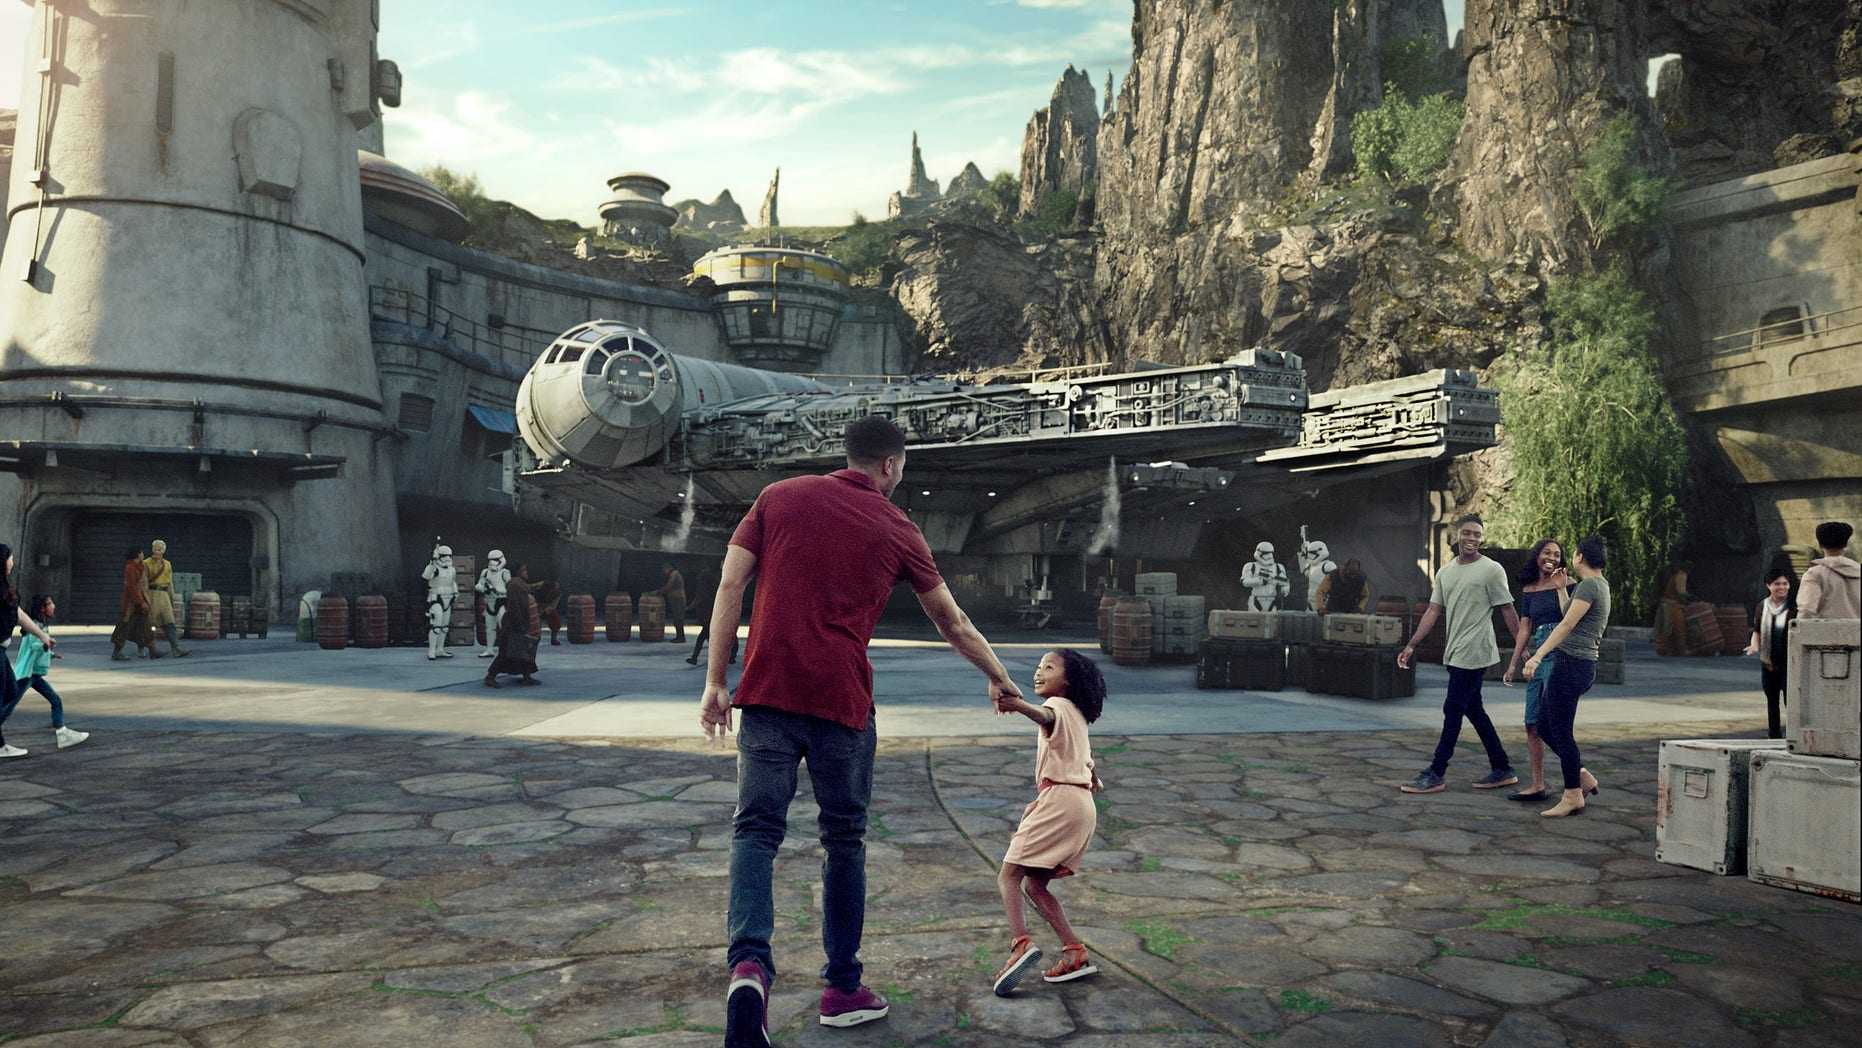 Star Wars: Galaxy's Edge will open May 31, 2019, at Disneyland Park in Anaheim, California, and Aug. 29, 2019, at Disney's Hollywood Studios in Lake Buena Vista, Florida.